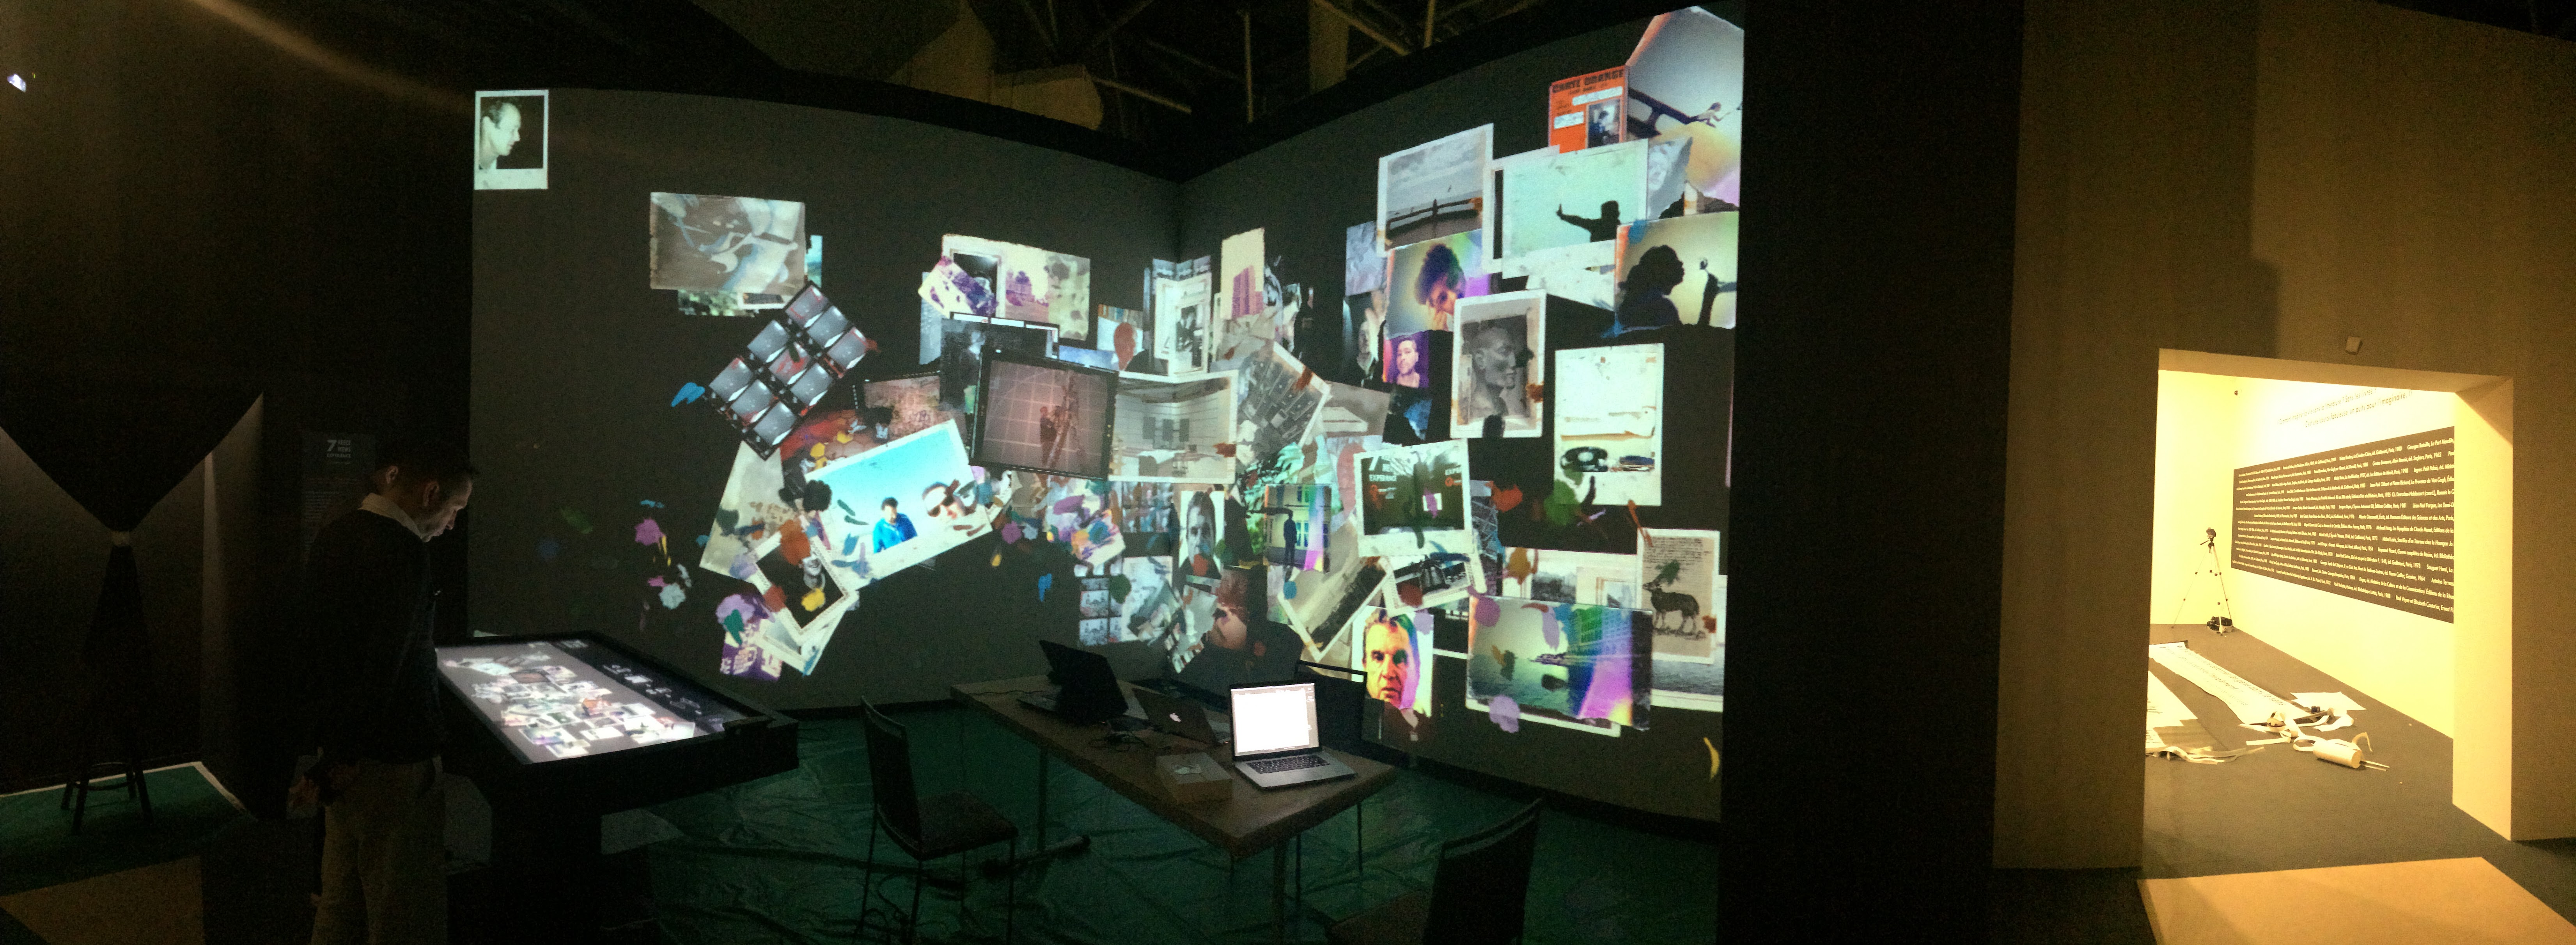 Interactive giant photo booth experience